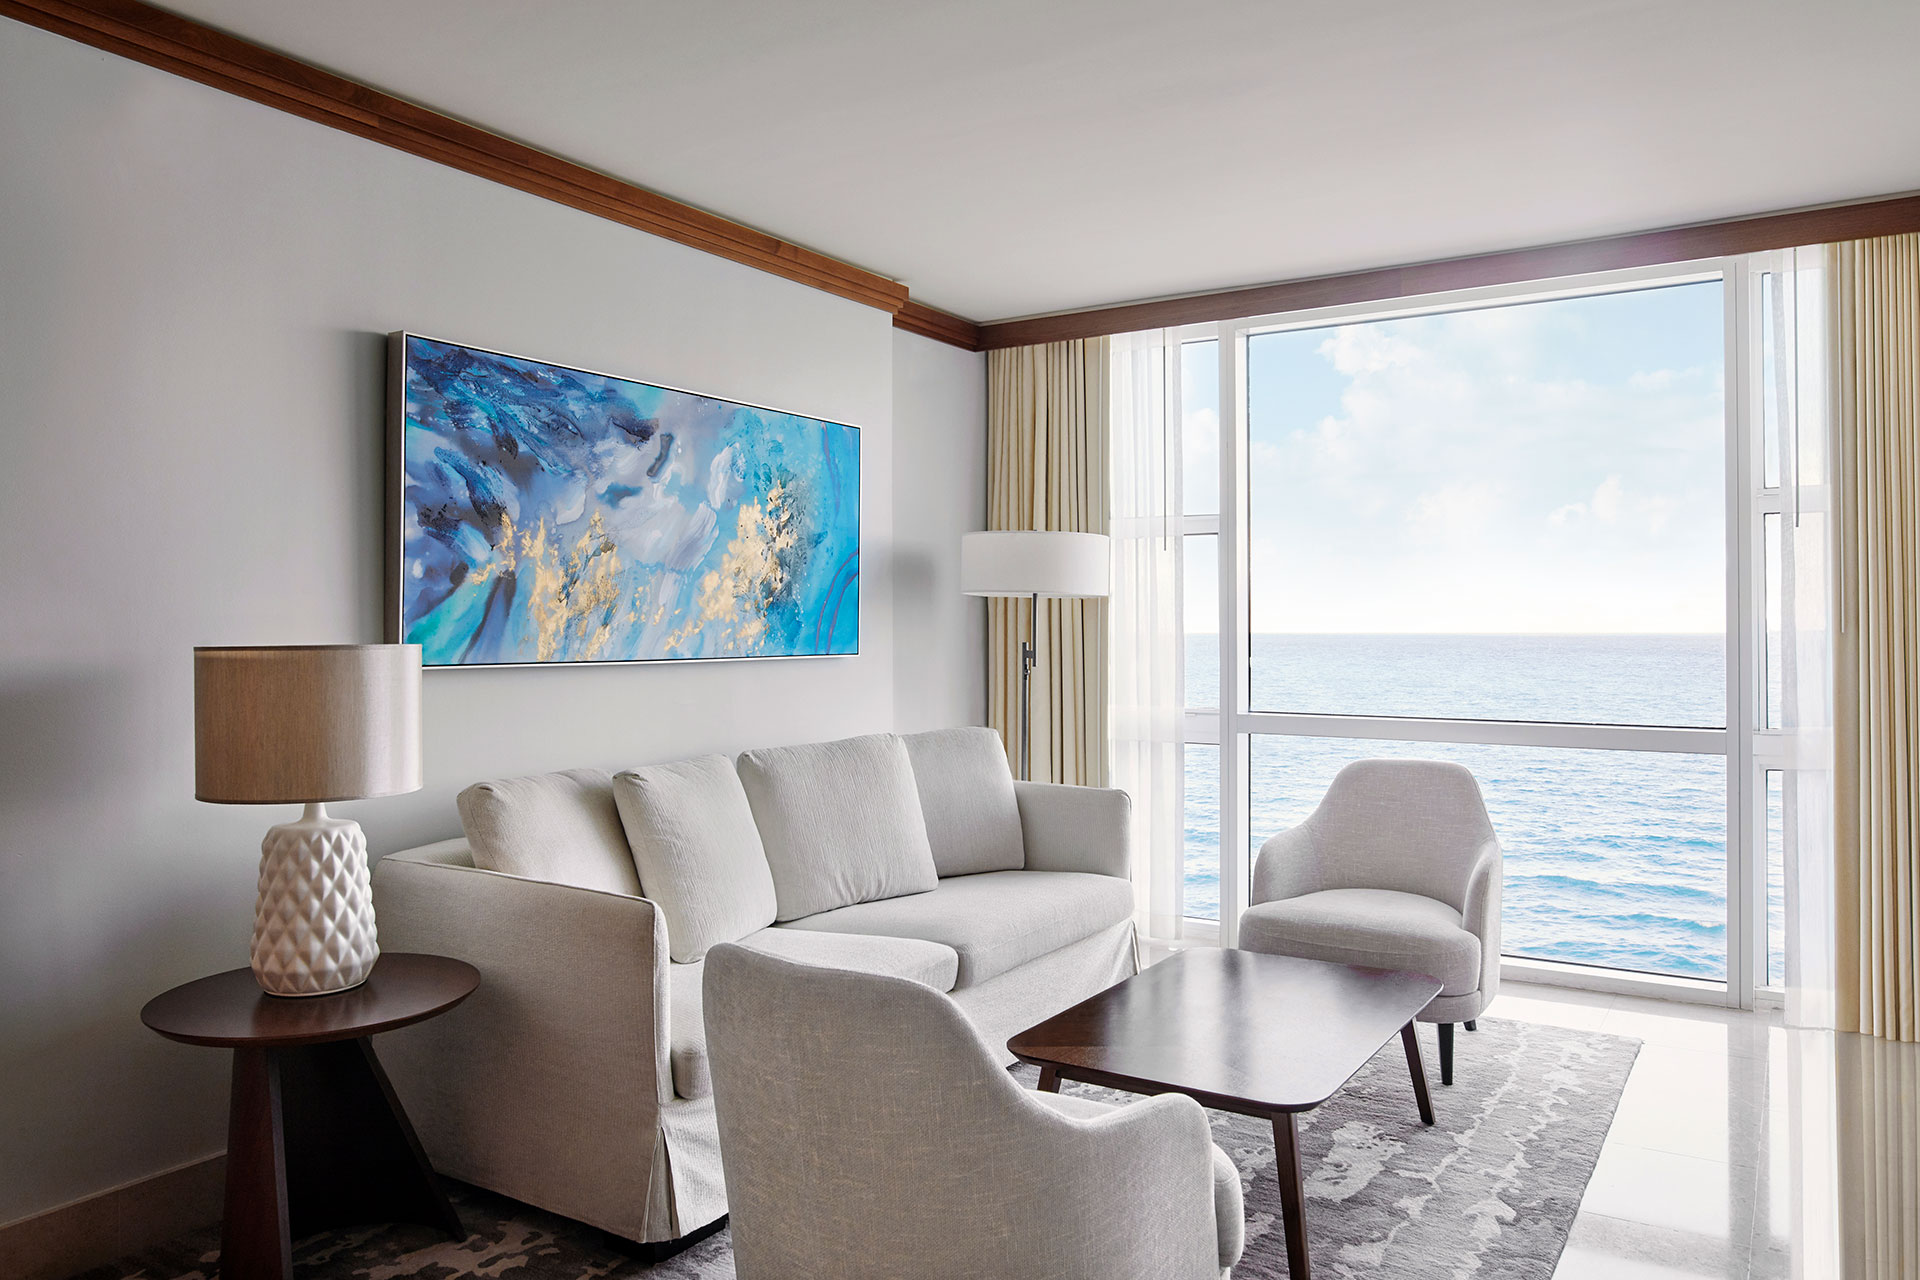 a sitting room in a suite with an ocean view. There is a light colored couch against the wall with a blue painting overhead. There are two chairs with the same fabric on either side of the couch circling a dark wood table.